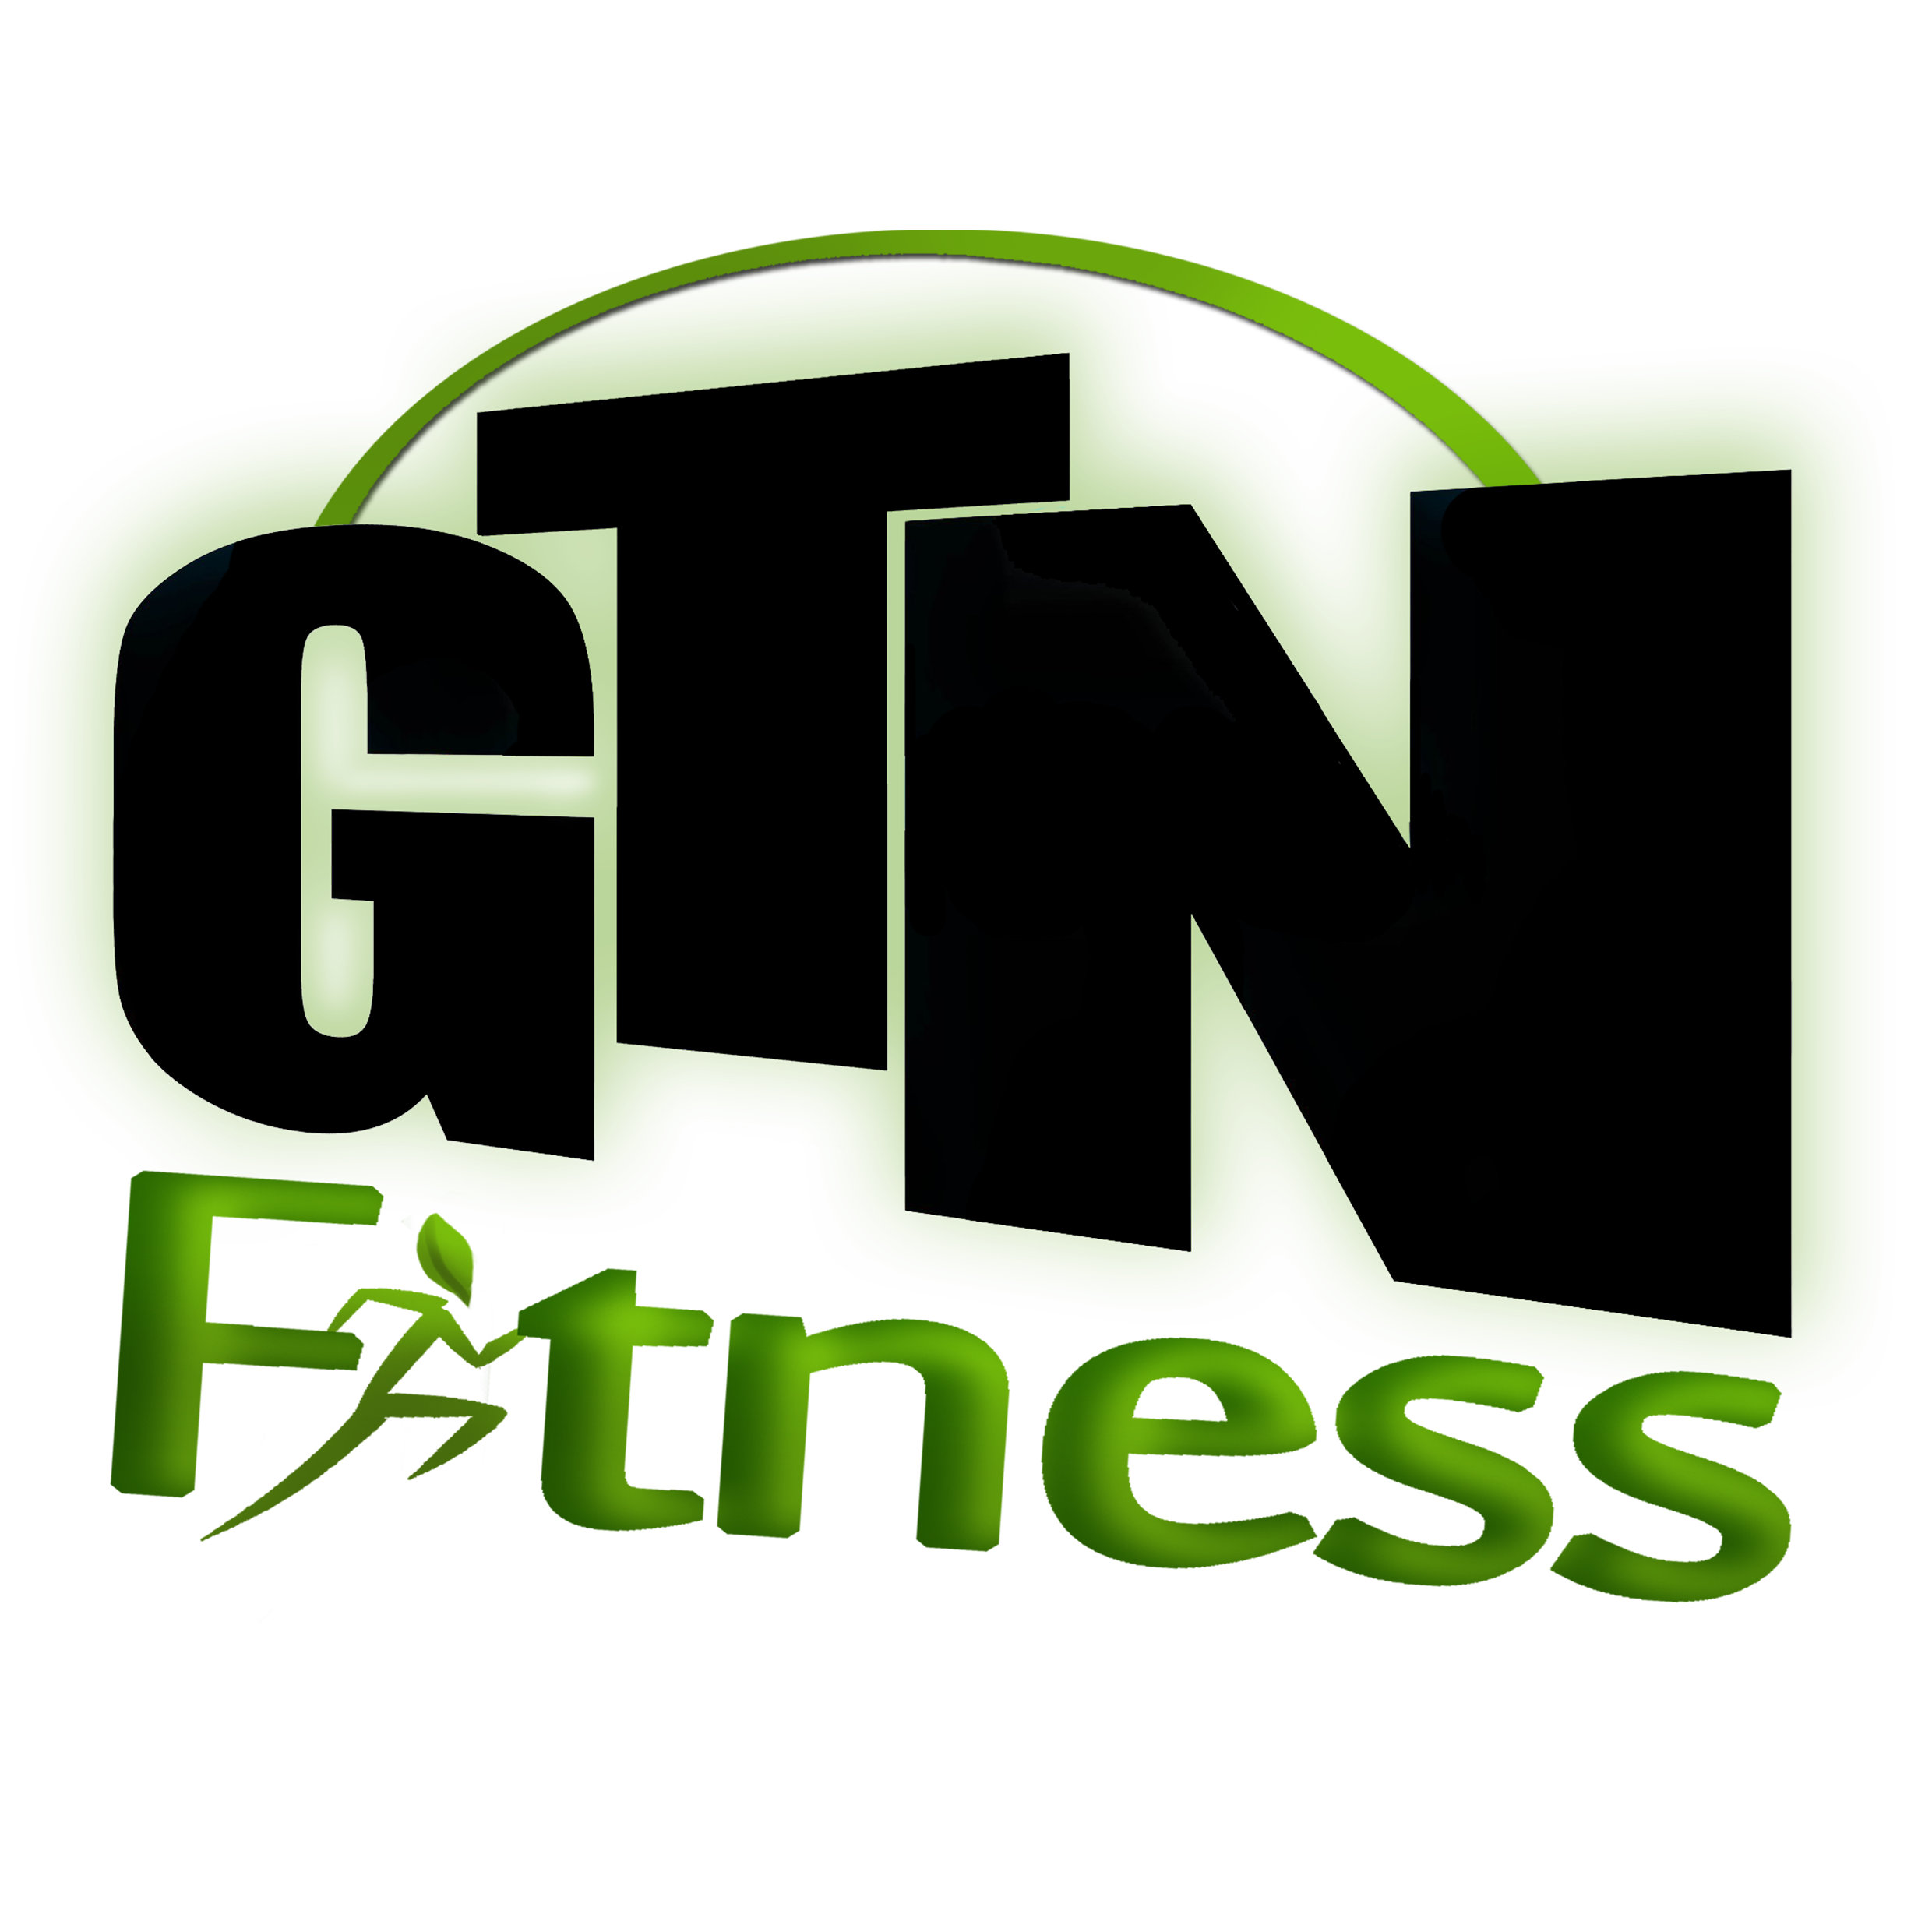 GTN Fitness - One of the Leading Bodyweight (Calisthenics) Training Specialist's In The UK.